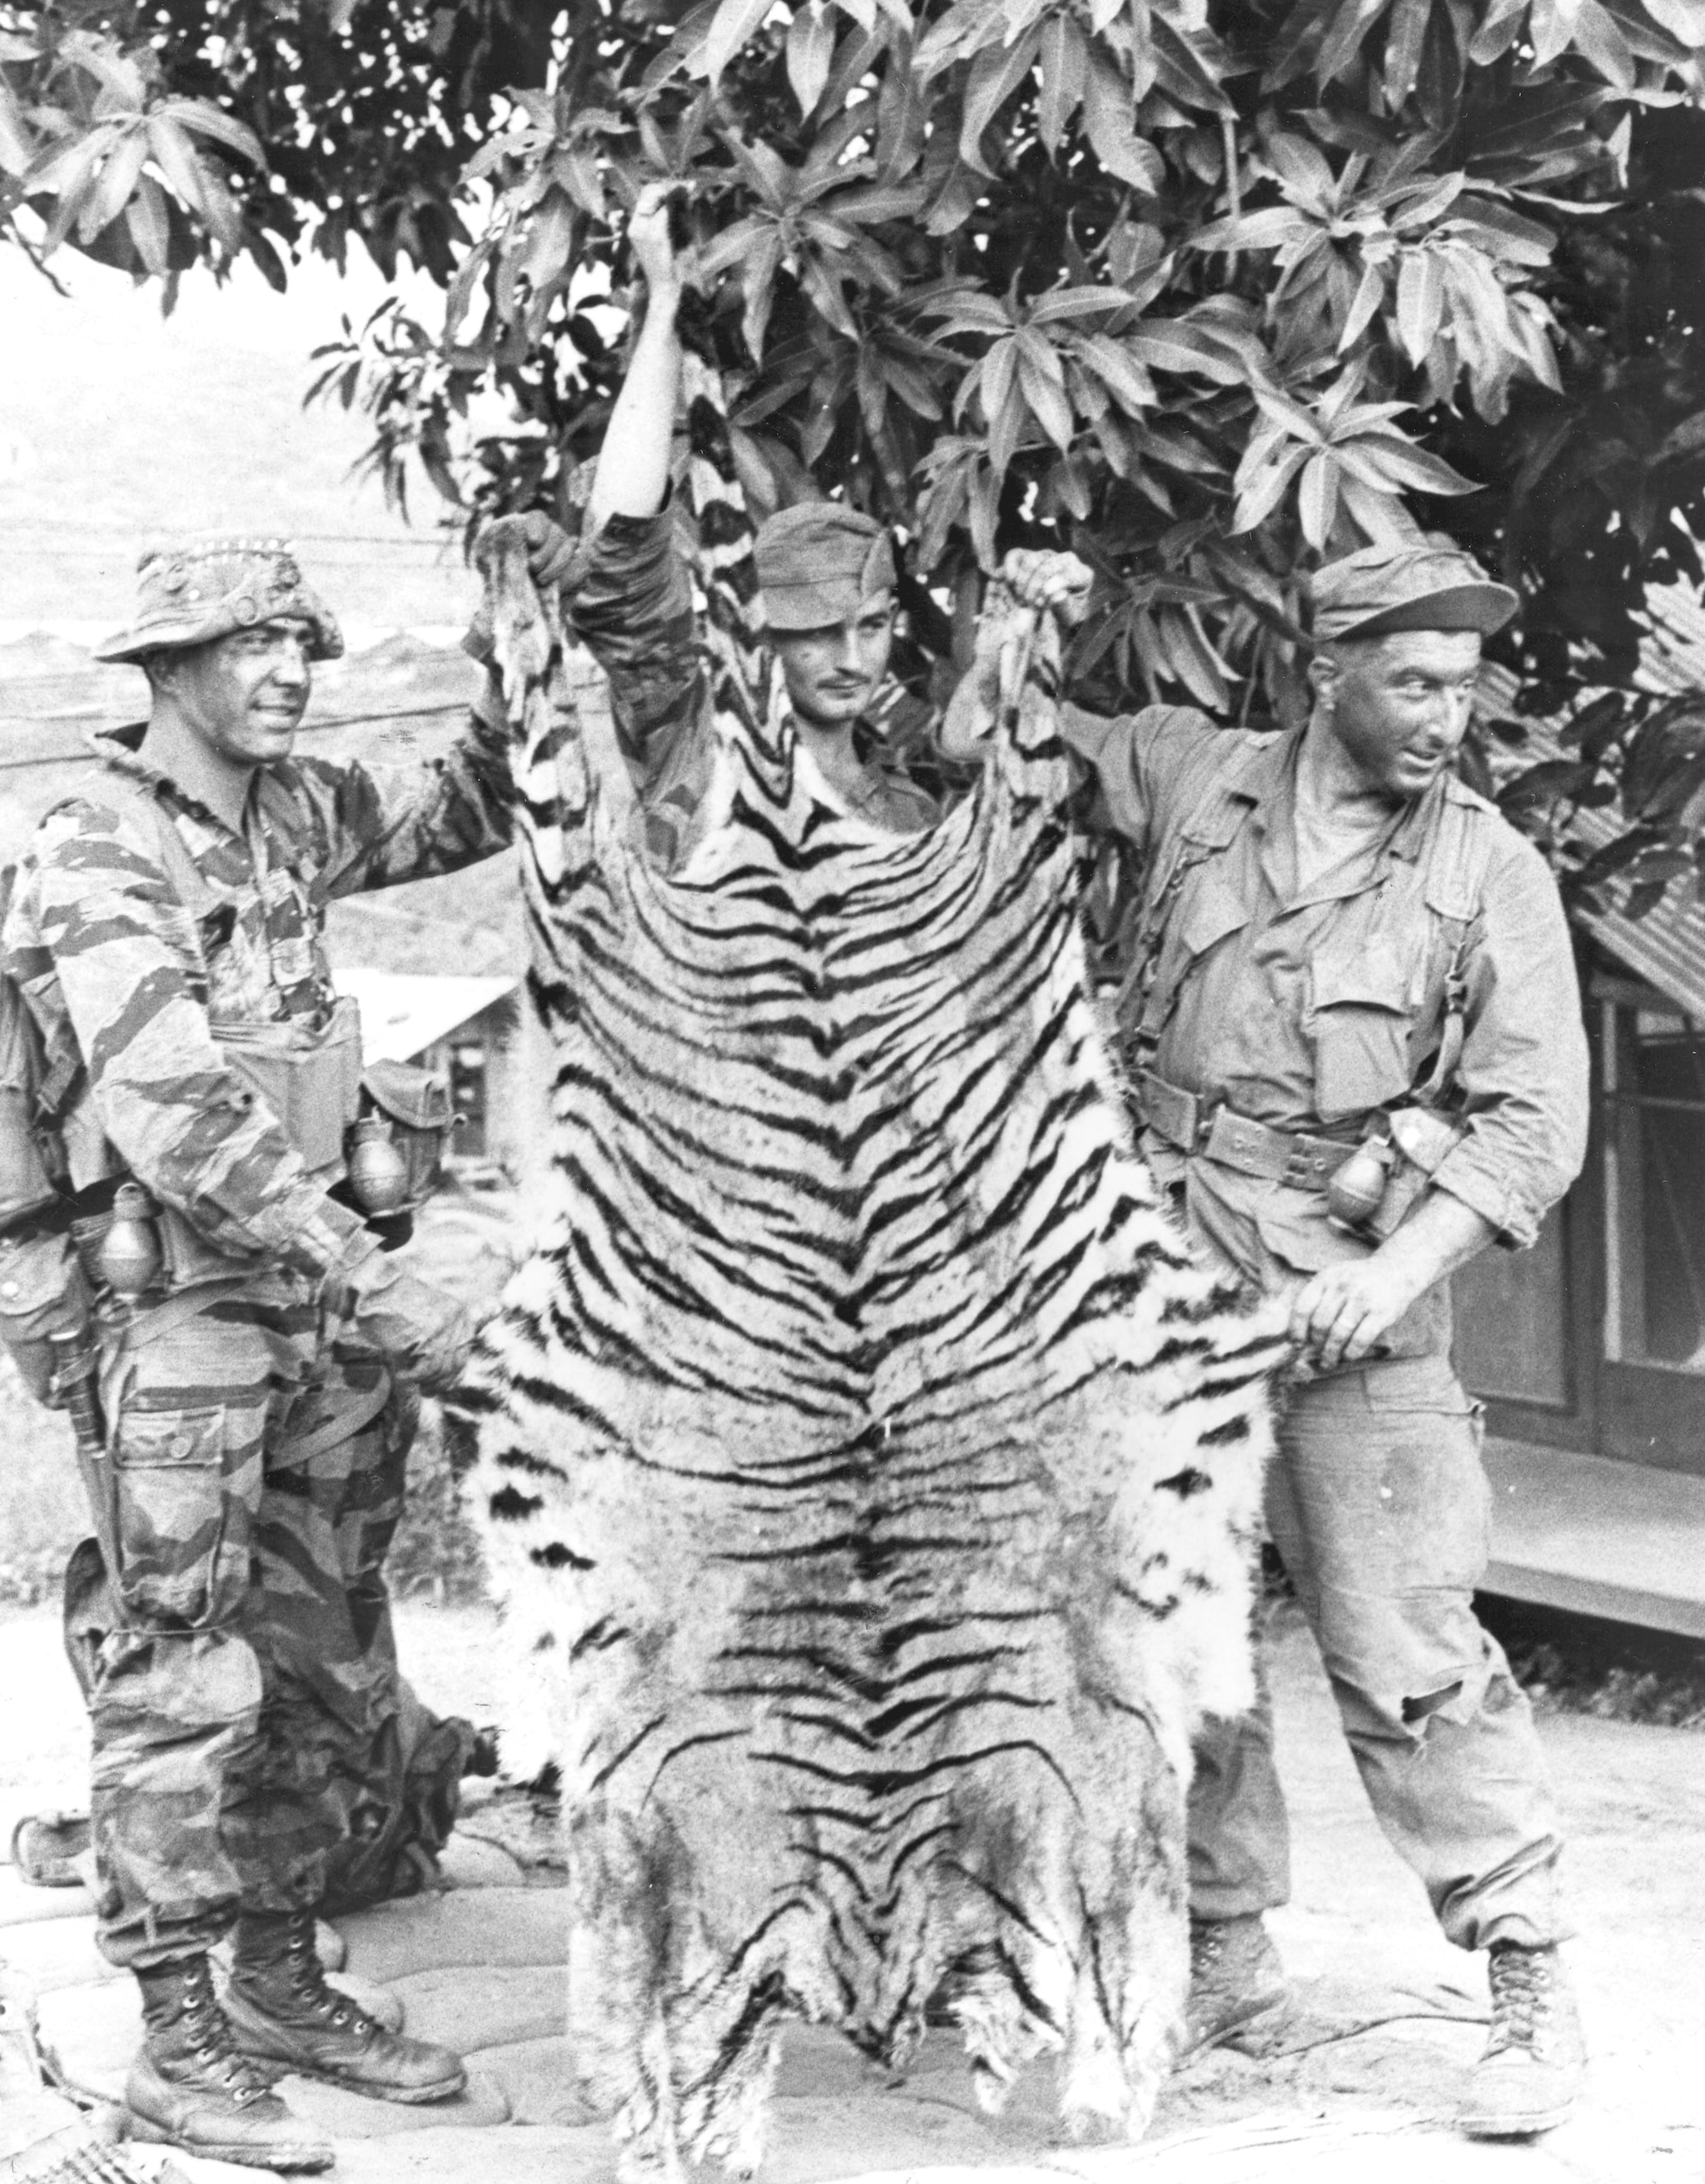 """""""Marines of the 1st Reconnaissance Battalion hold up a tiger skin that belonged to a tiger they killed on Thanksgiving Day during a five day patrol. From left to right: Lance Corporal James Ortega, Lance Corporal Thomas L. Little, and Sergeant James L. Griffith."""" November 1967 (Photo: USMC)"""